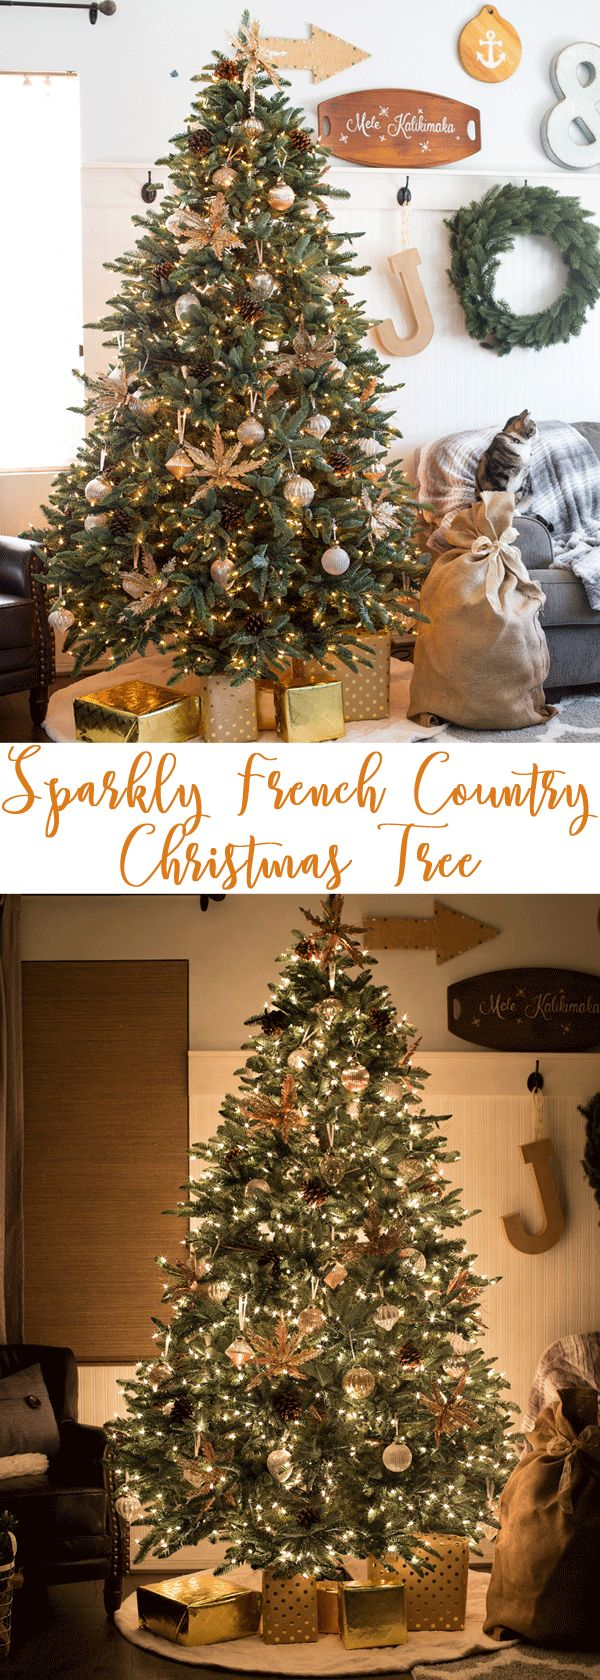 French country christmas decorations - Sparkly French Country Christmas Tree